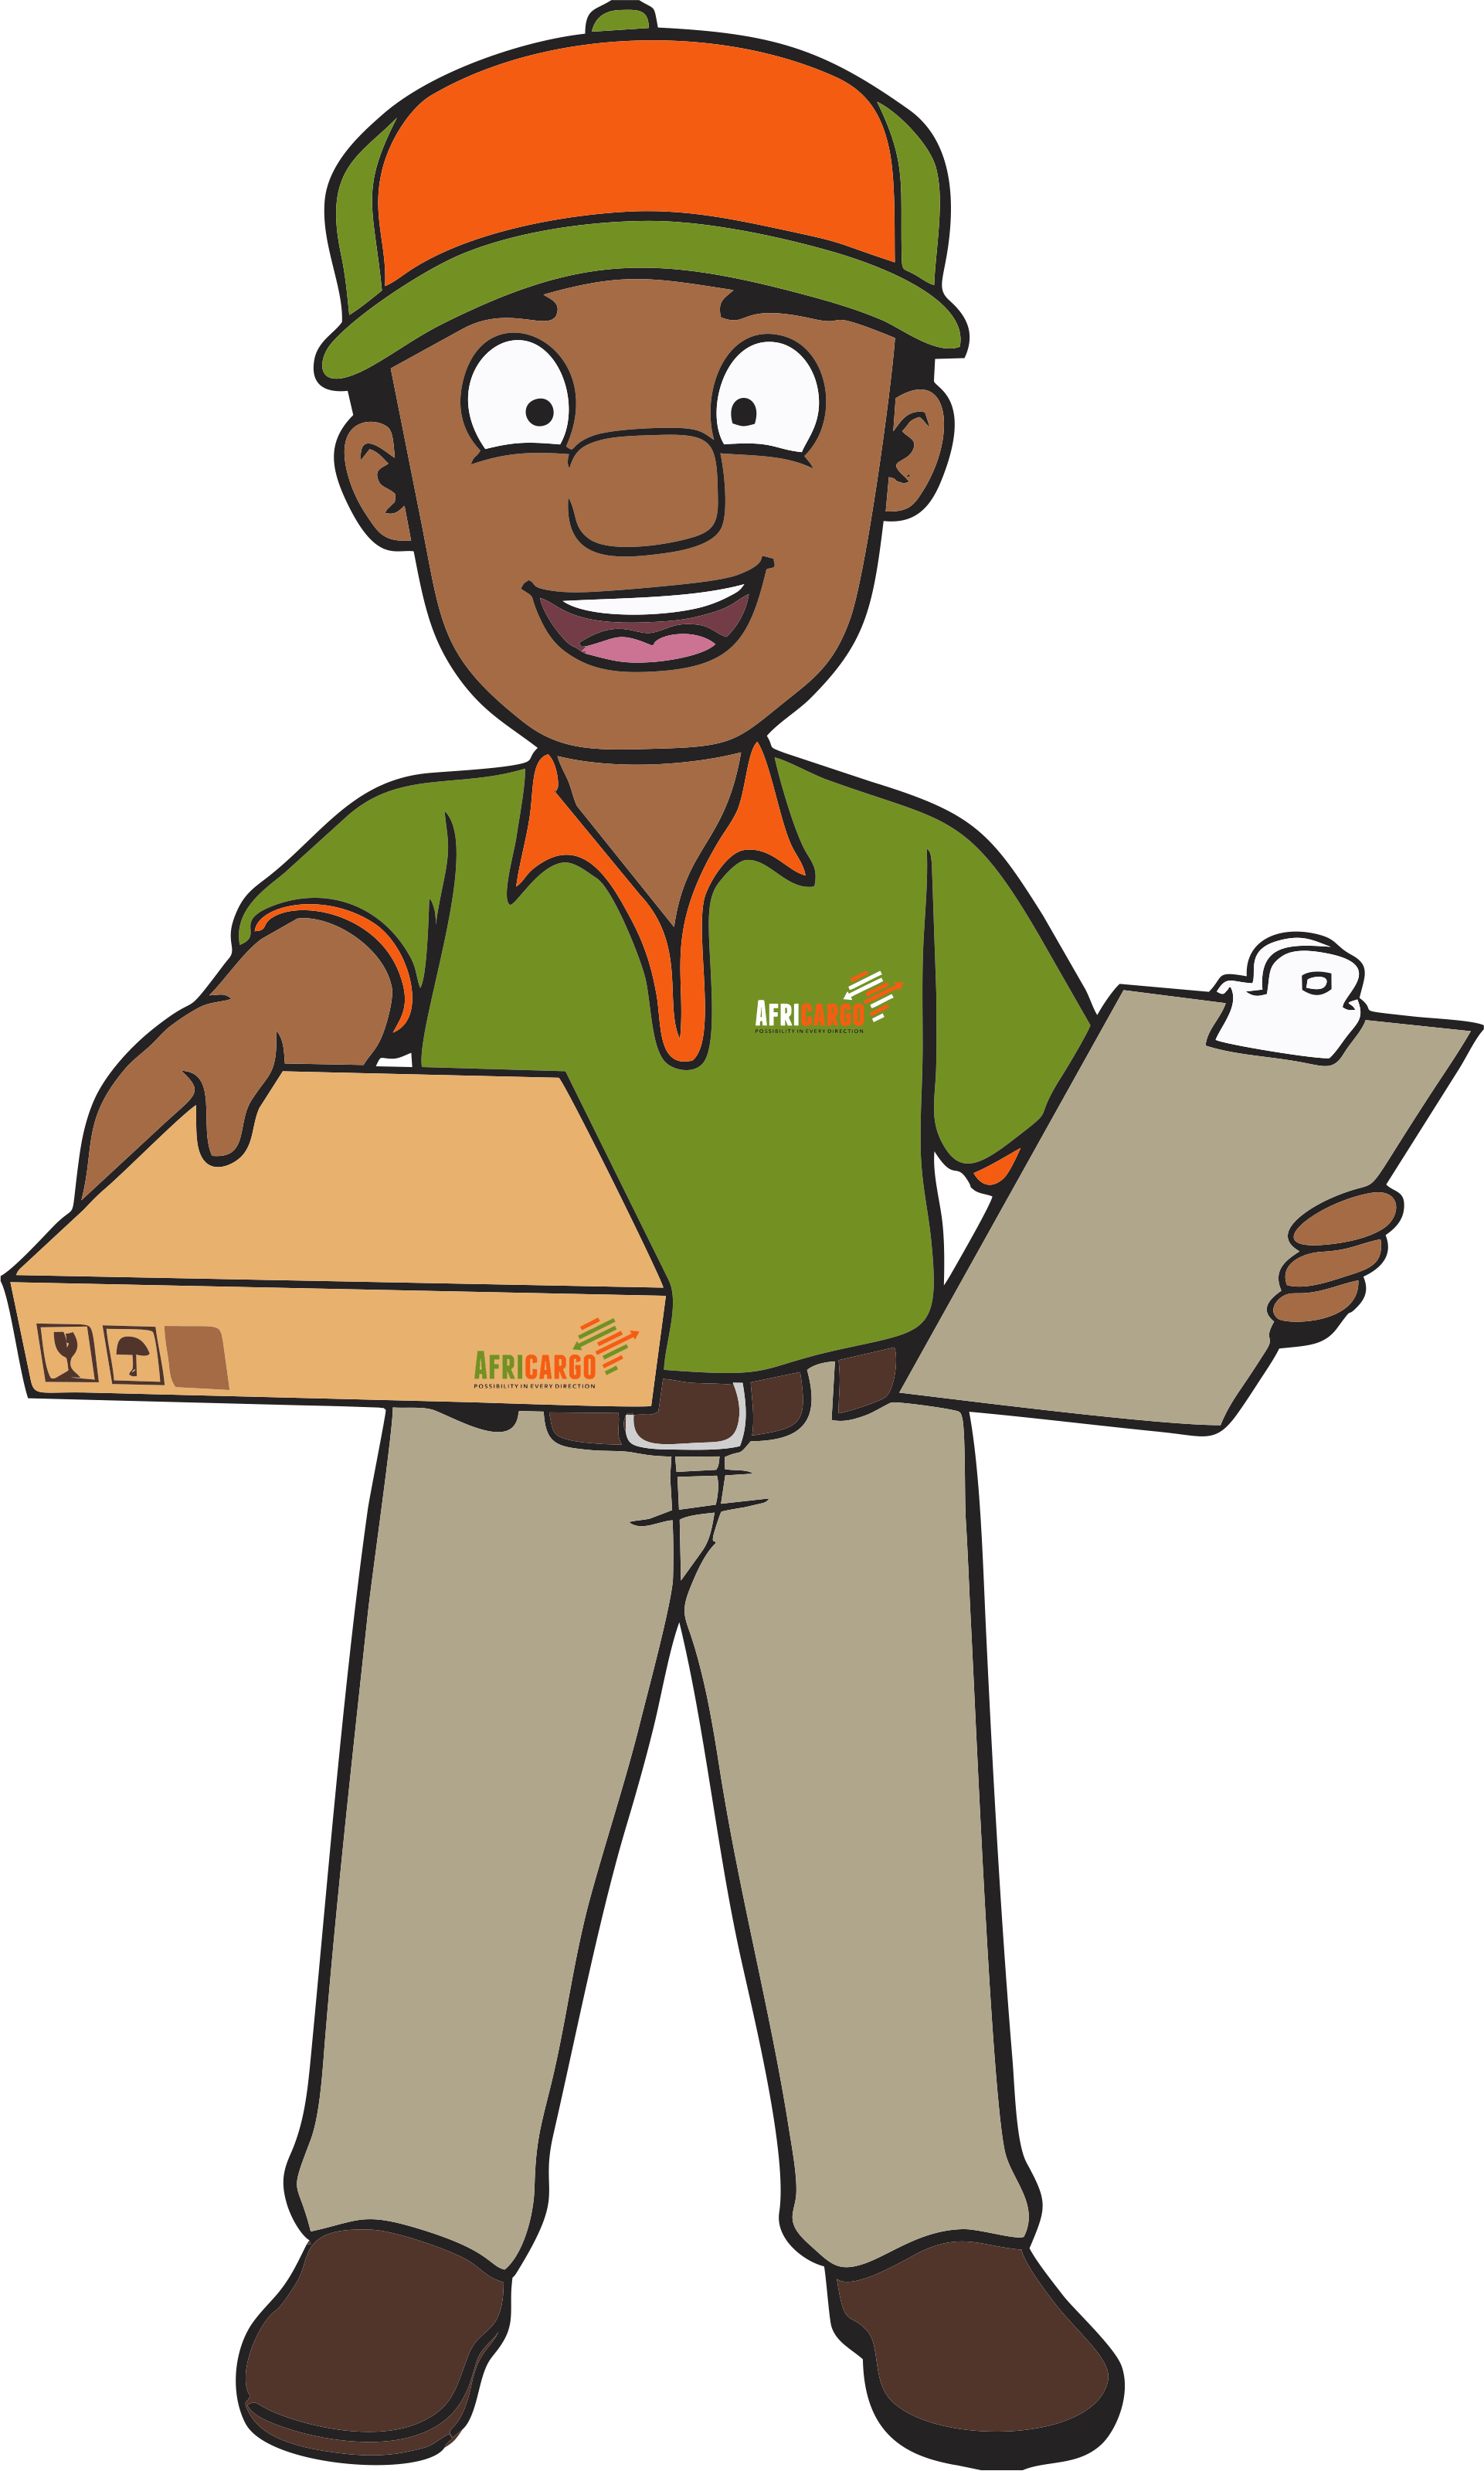 Fast clipart delivery man, Picture #1067814 fast clipart.